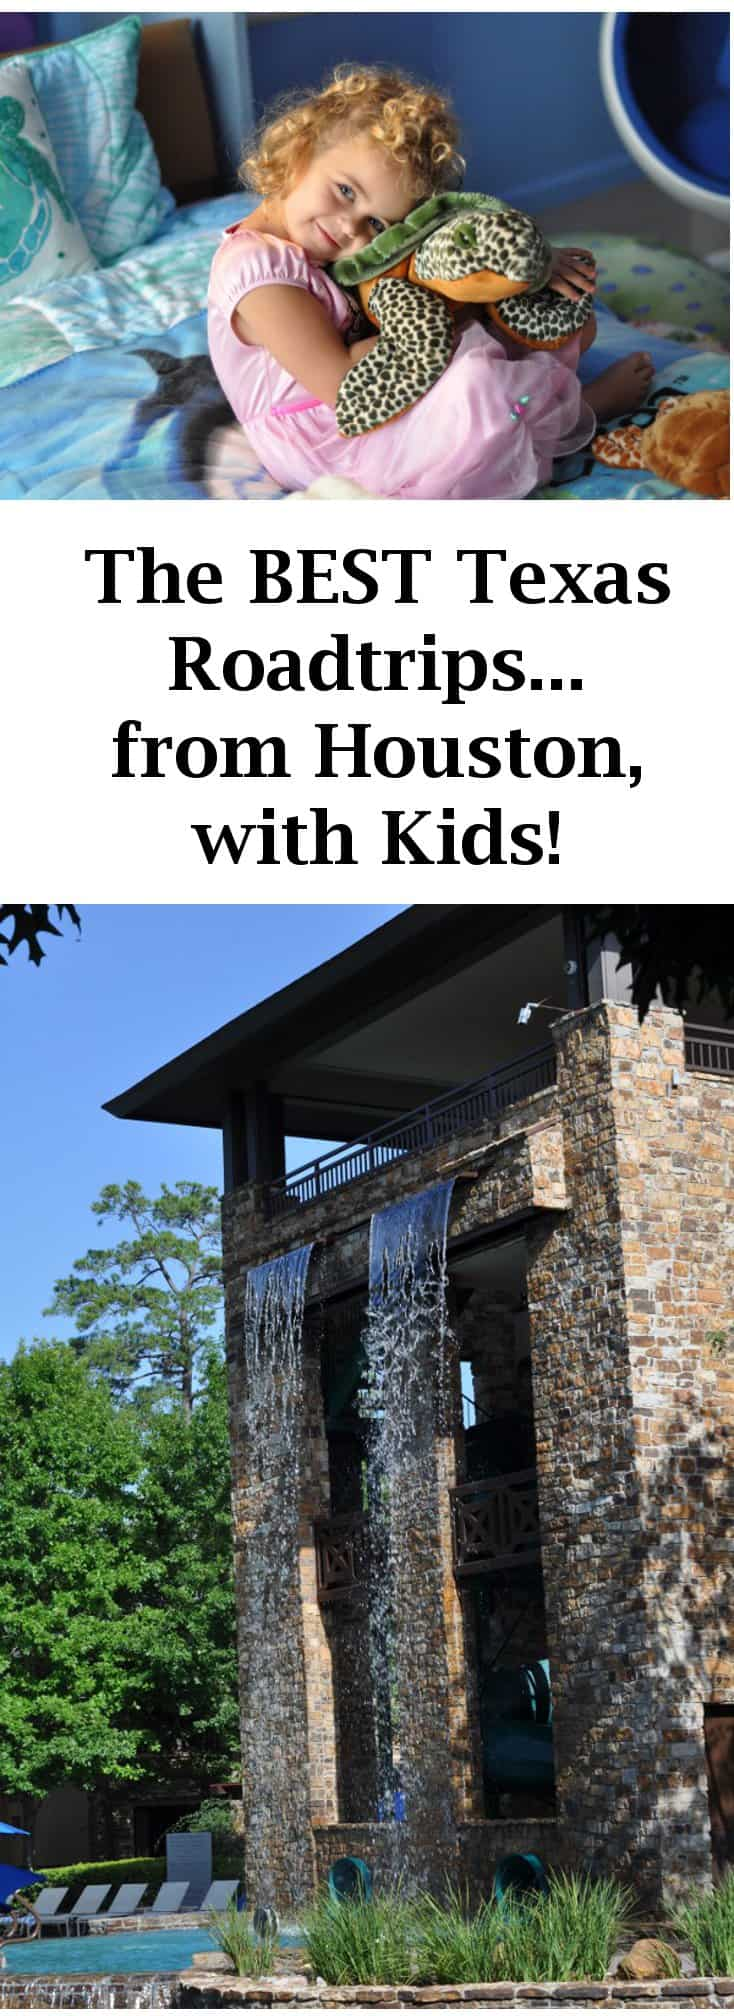 The Best Texas Roadtrips from Houston... as recommended by Houston parents!